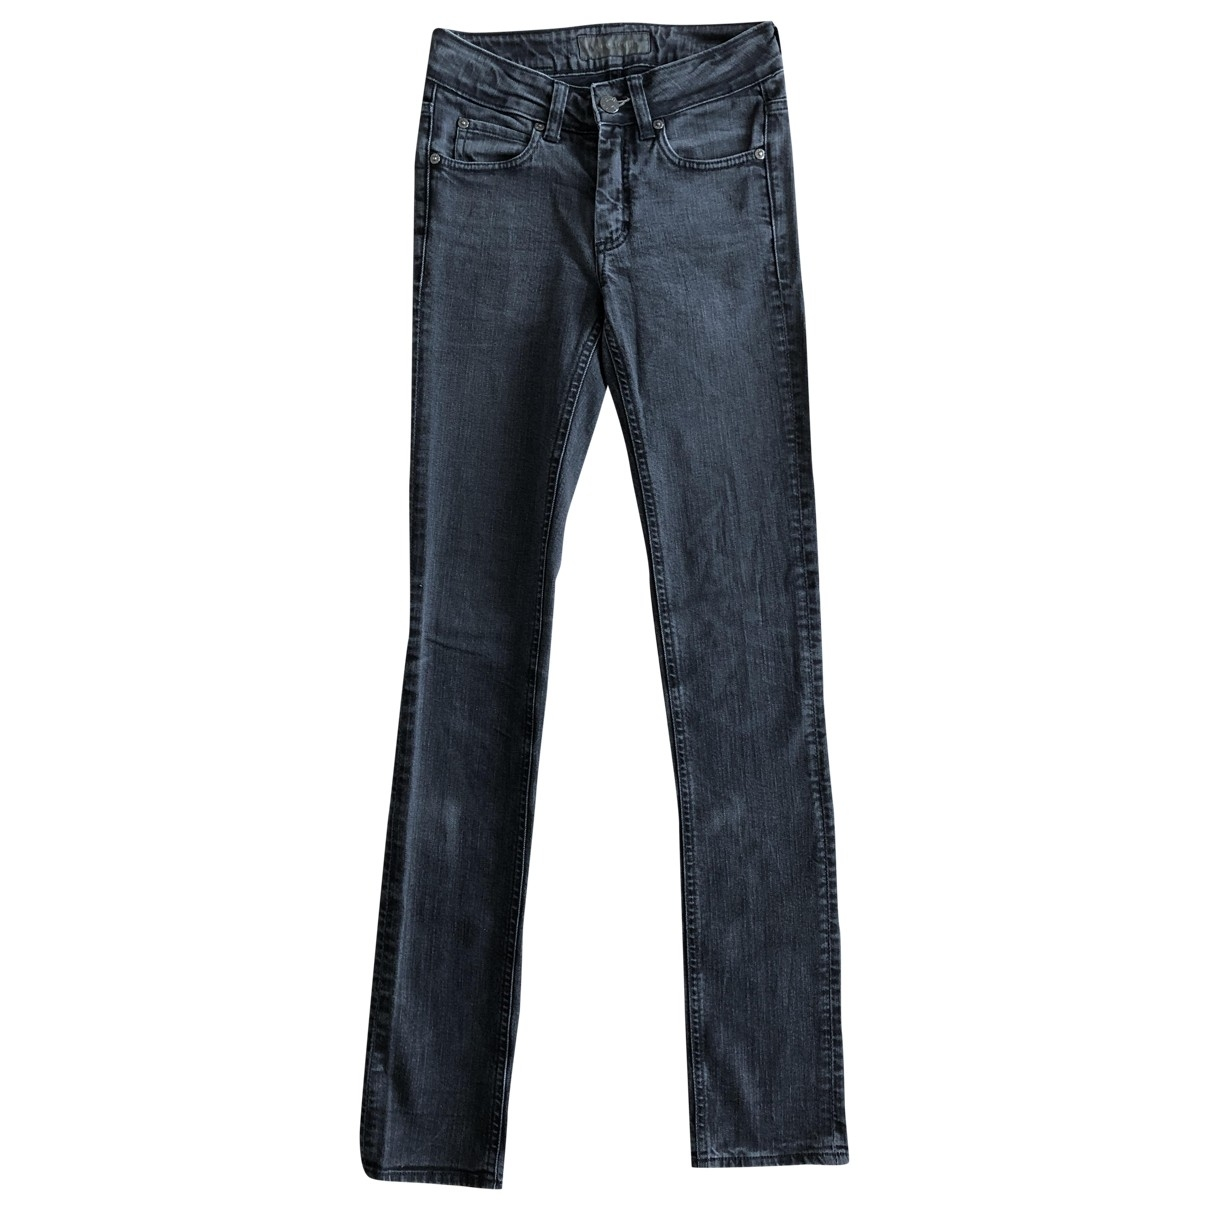 Acne Studios \N Grey Cotton - elasthane Jeans for Women 32 FR